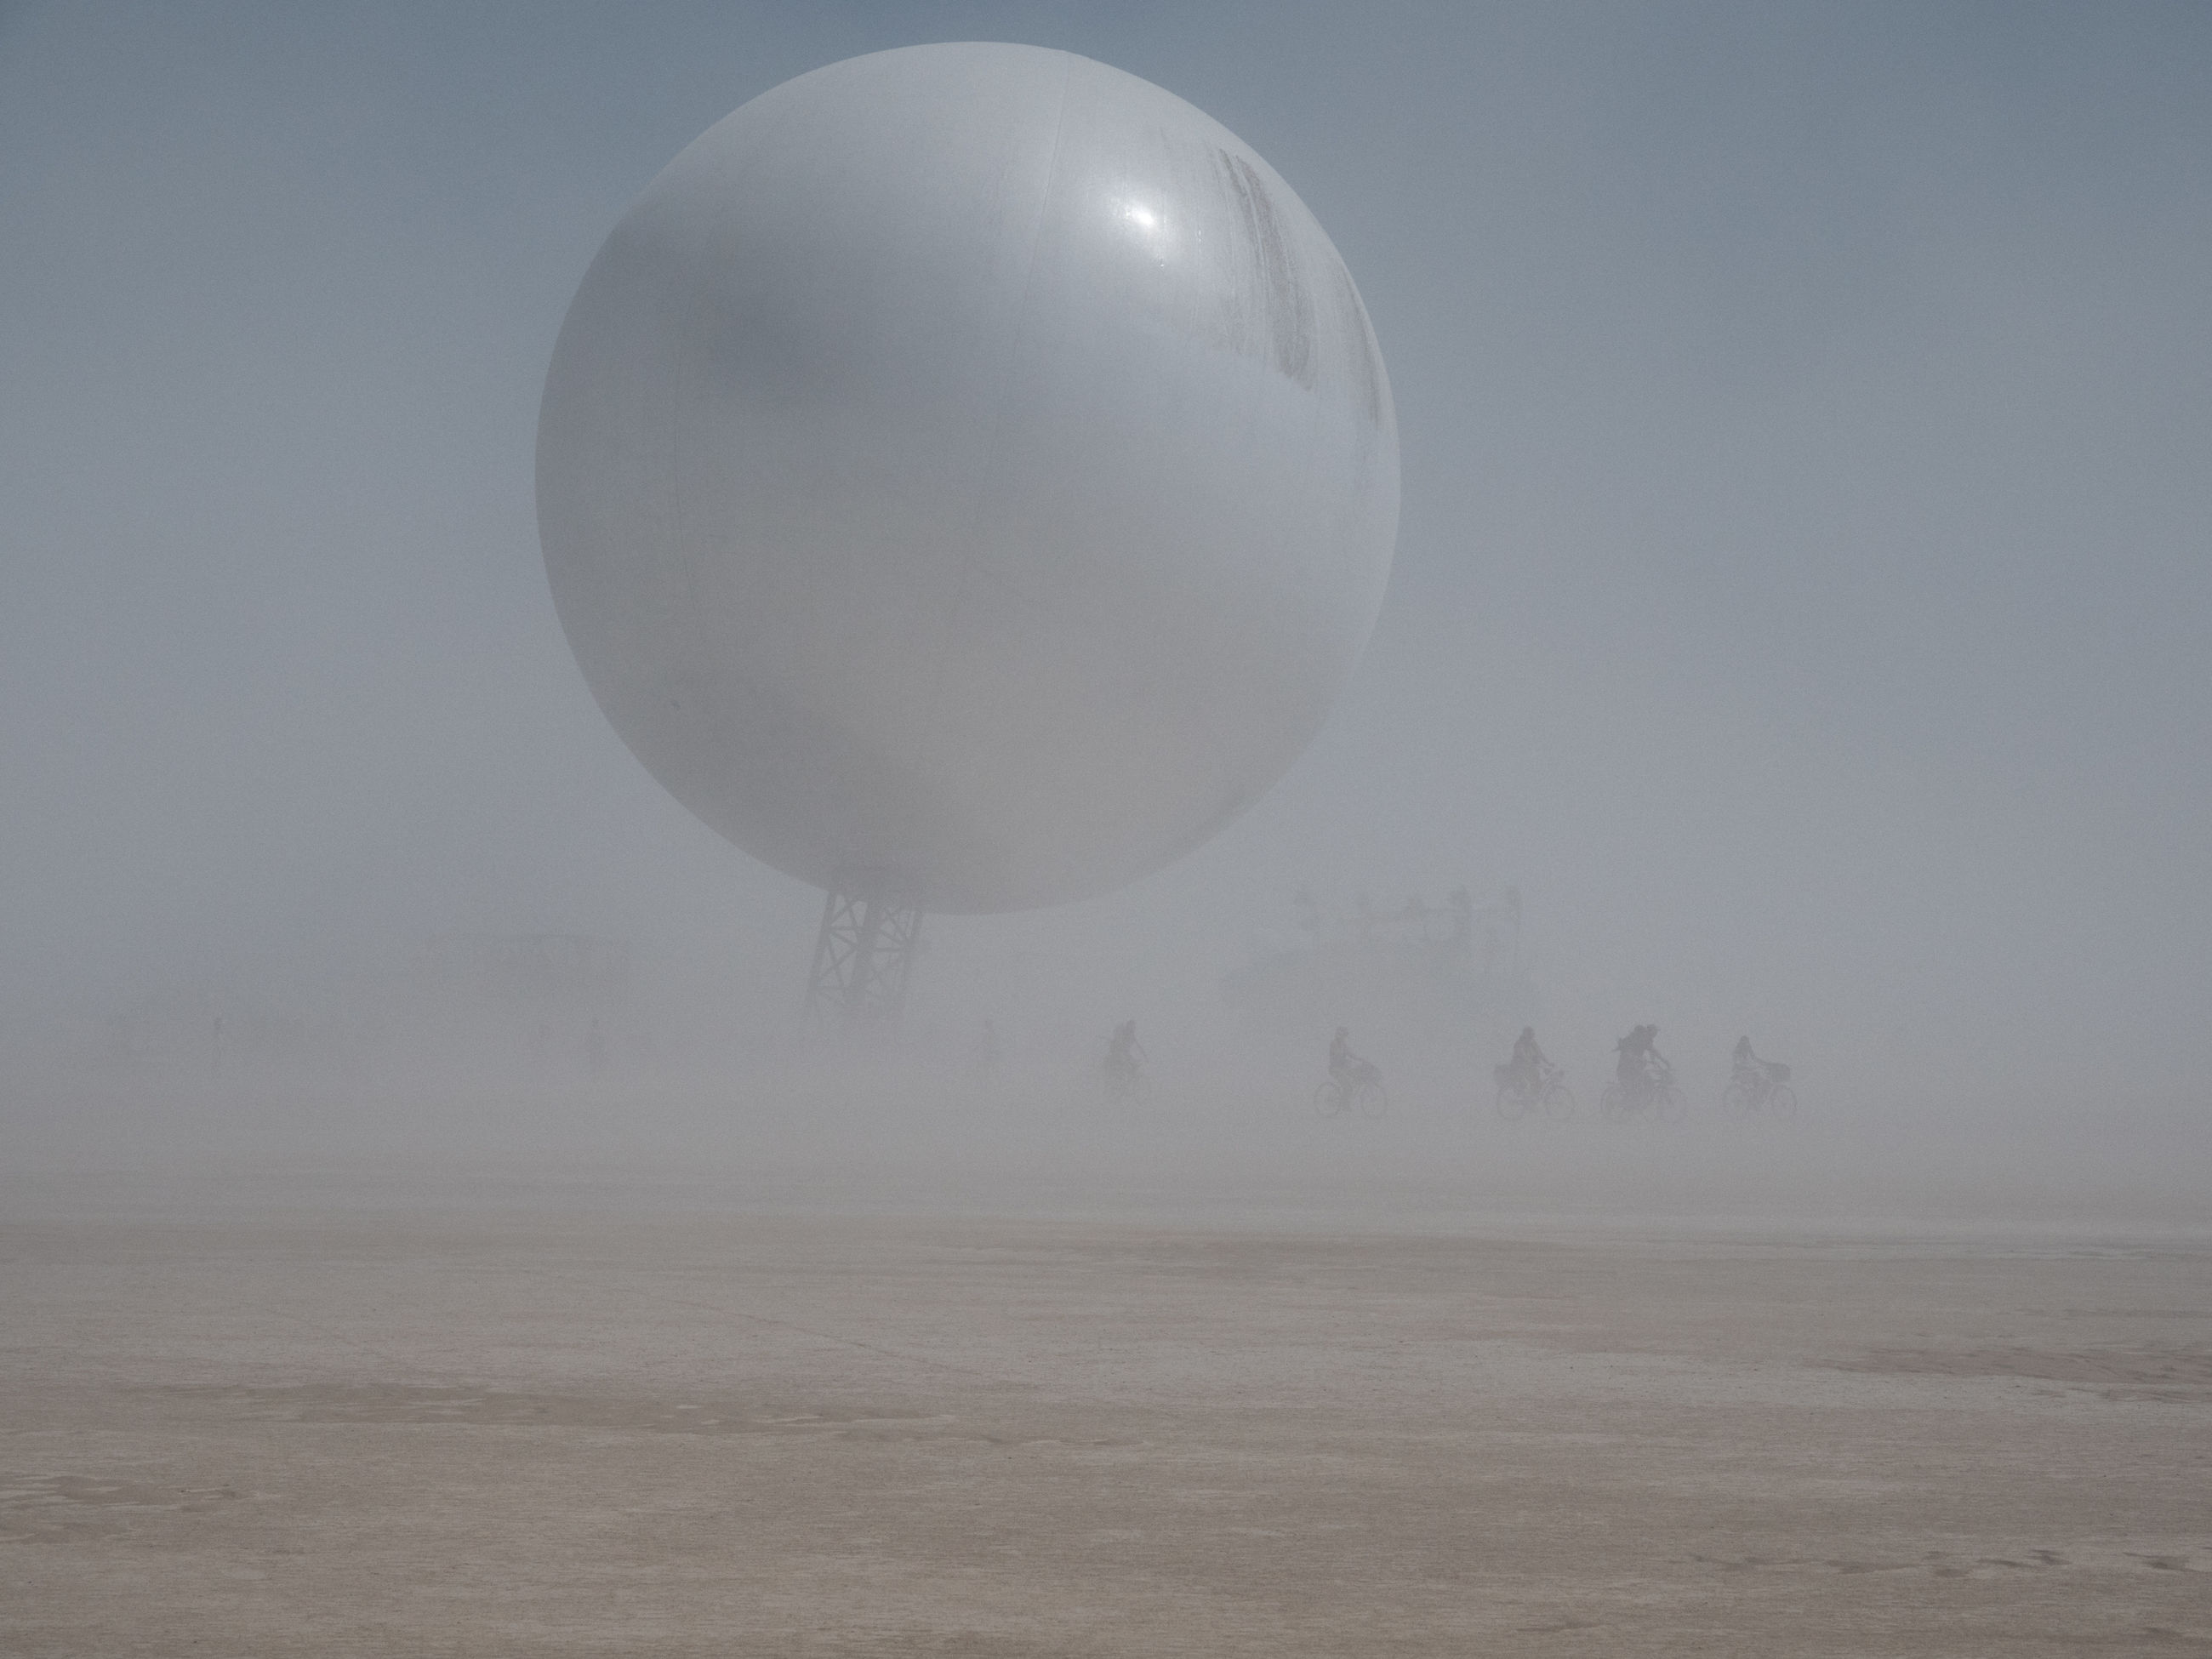 fog, no people, beauty in nature, landscape, scenics - nature, tranquil scene, balloon, nature, environment, sky, tranquility, non-urban scene, tree, cold temperature, day, winter, outdoors, land, field